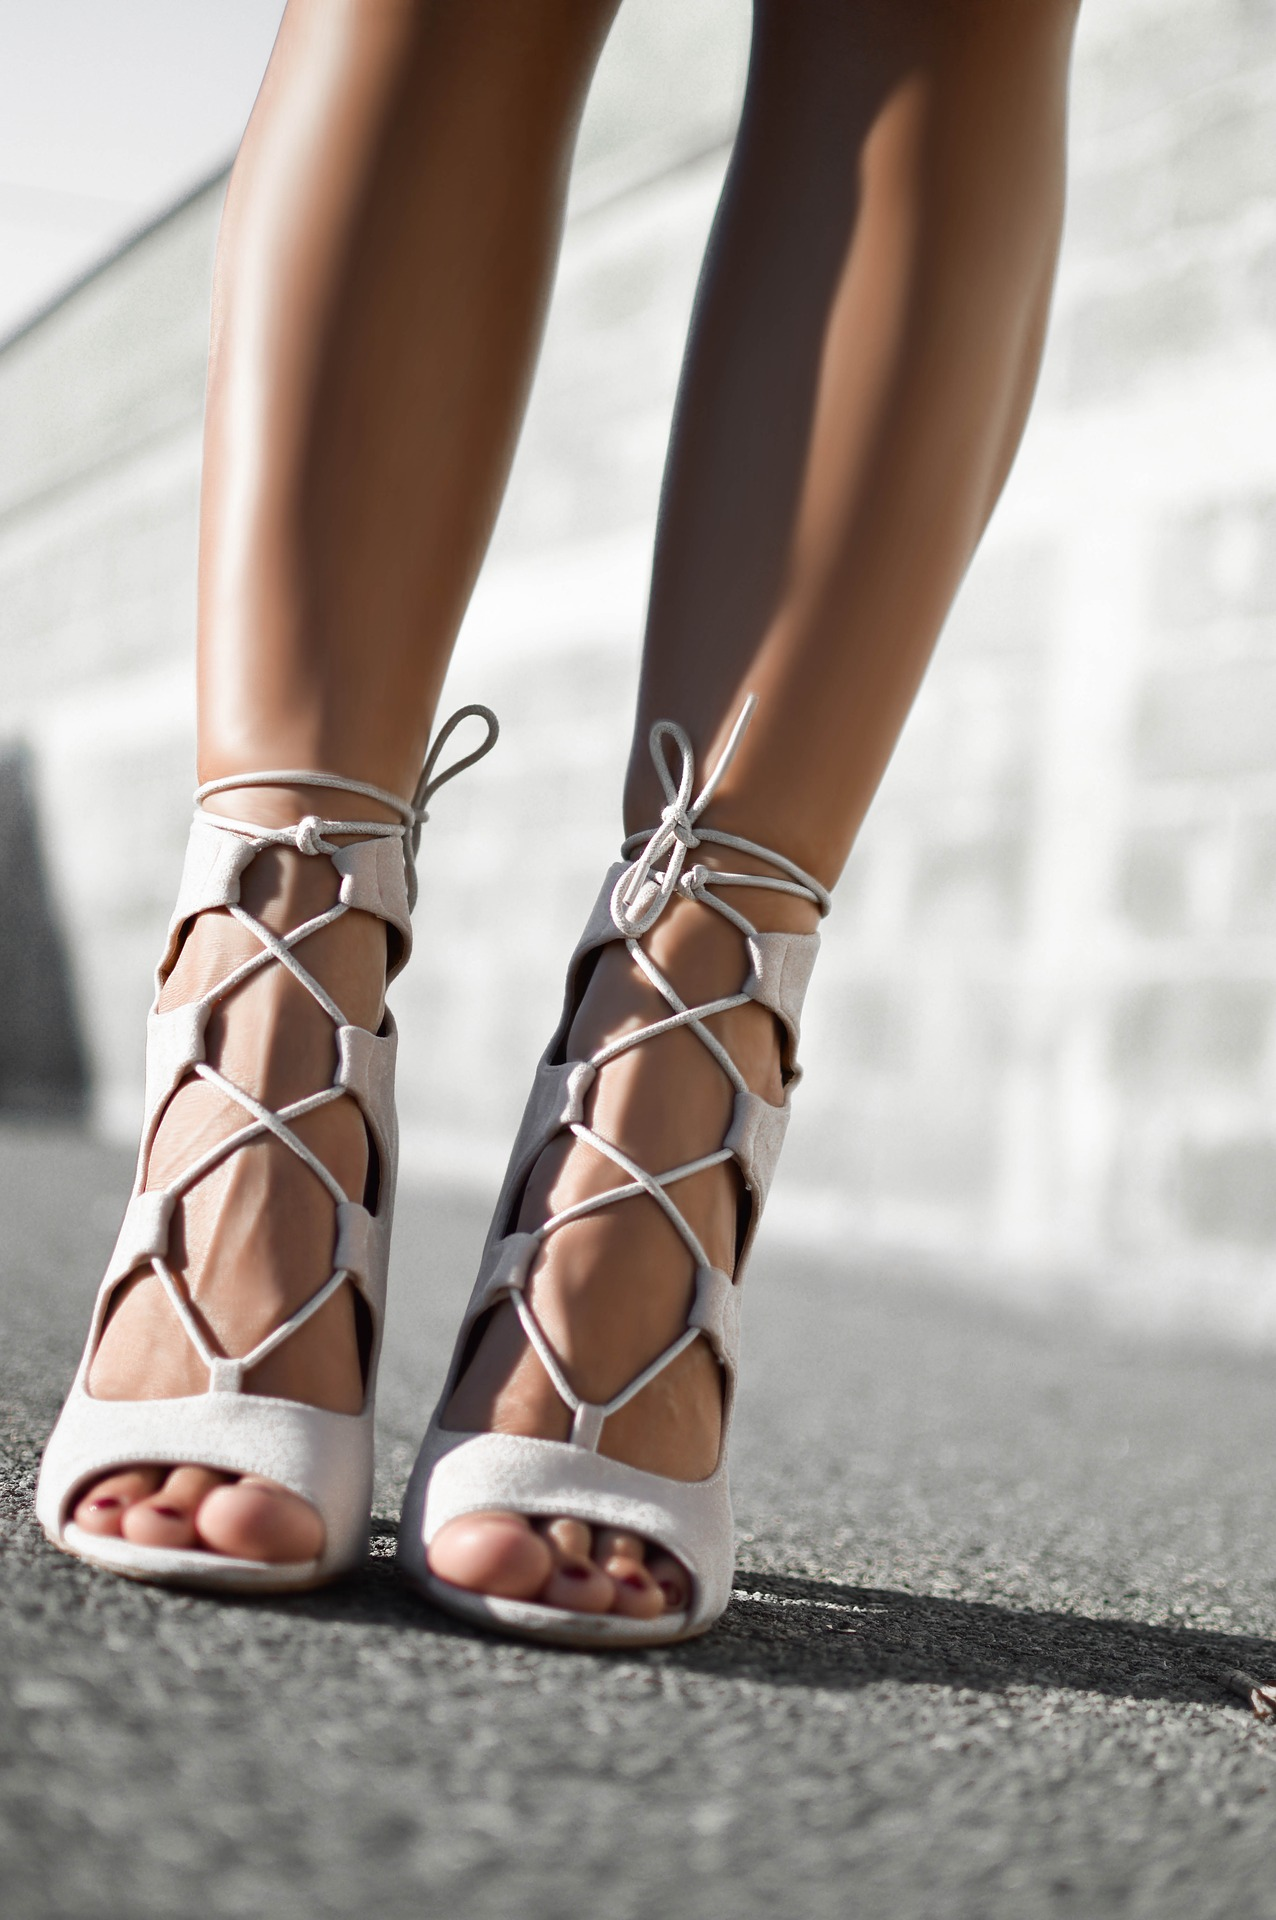 Buy The Best Lace Up Heels